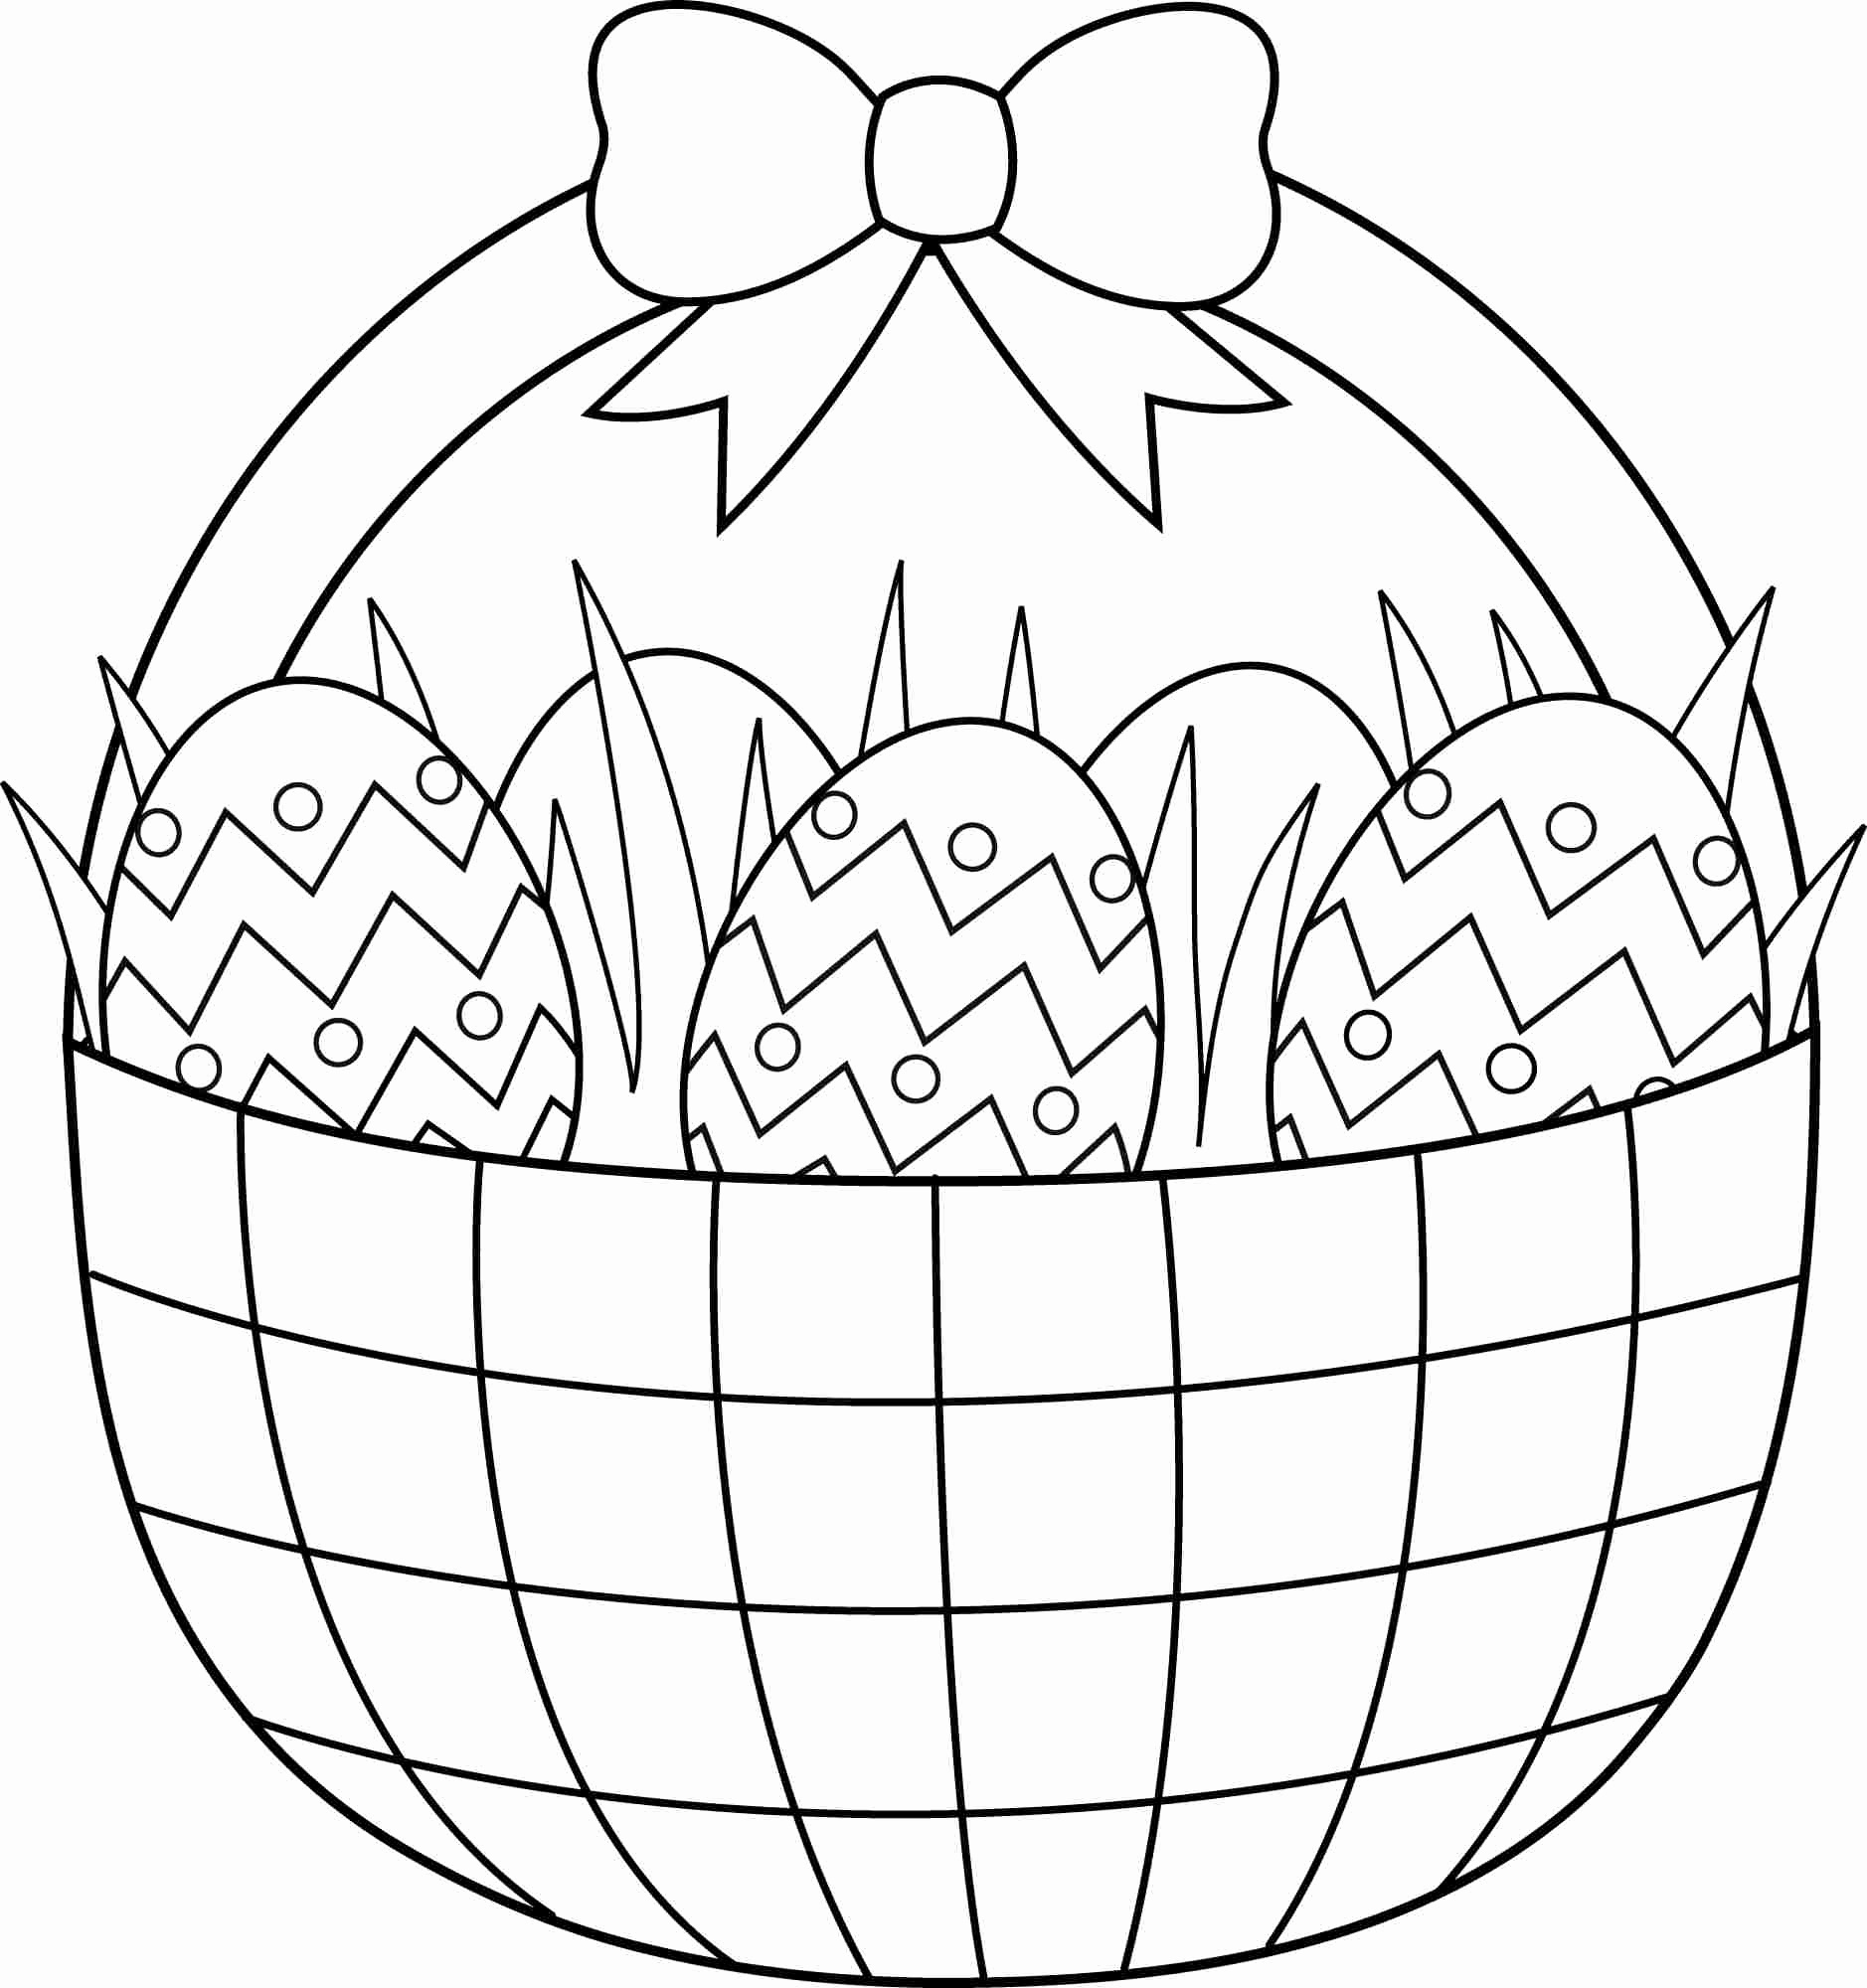 Coloring Book World: 69 Extraordinary Easter Coloring Pages Picture - Free Printable Easter Pages